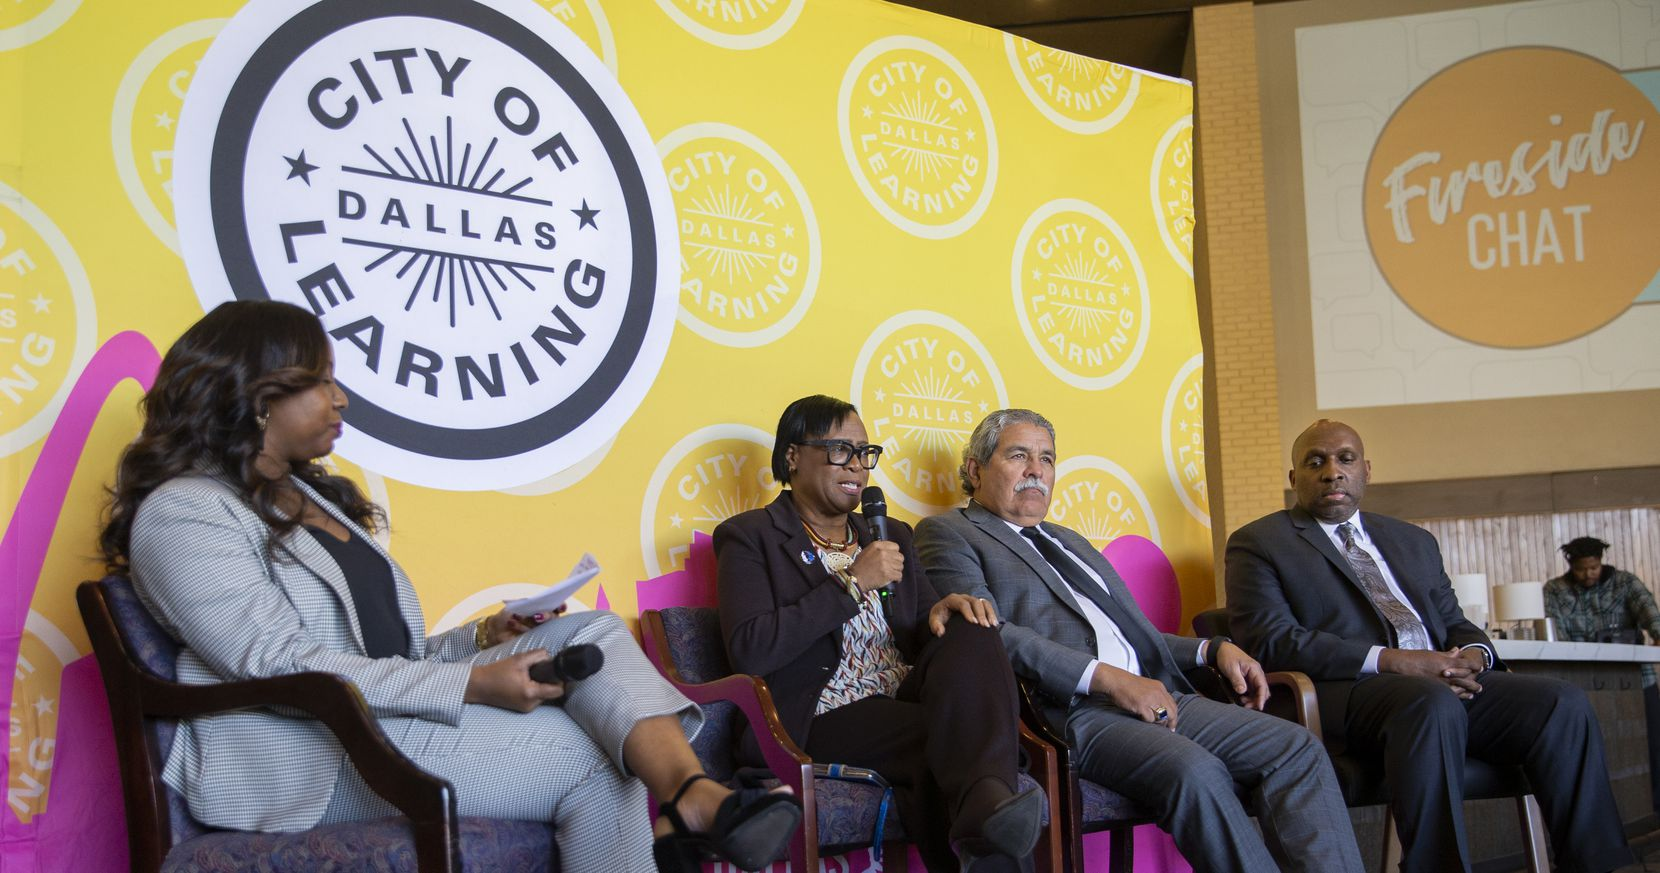 Dallas Mavericks CEO Cynt Marshall speaks alongside  DISD Superintendent Michael Hinojosa and City Manager T.C. Broadnax during the Dallas City of Learning Fireside chat on Dec. 2, 2019 in Dallas. Dallas City of Learning leaders shared the results of their 2019 summer program and awards during the event. (Juan Figueroa/ The Dallas Morning News)